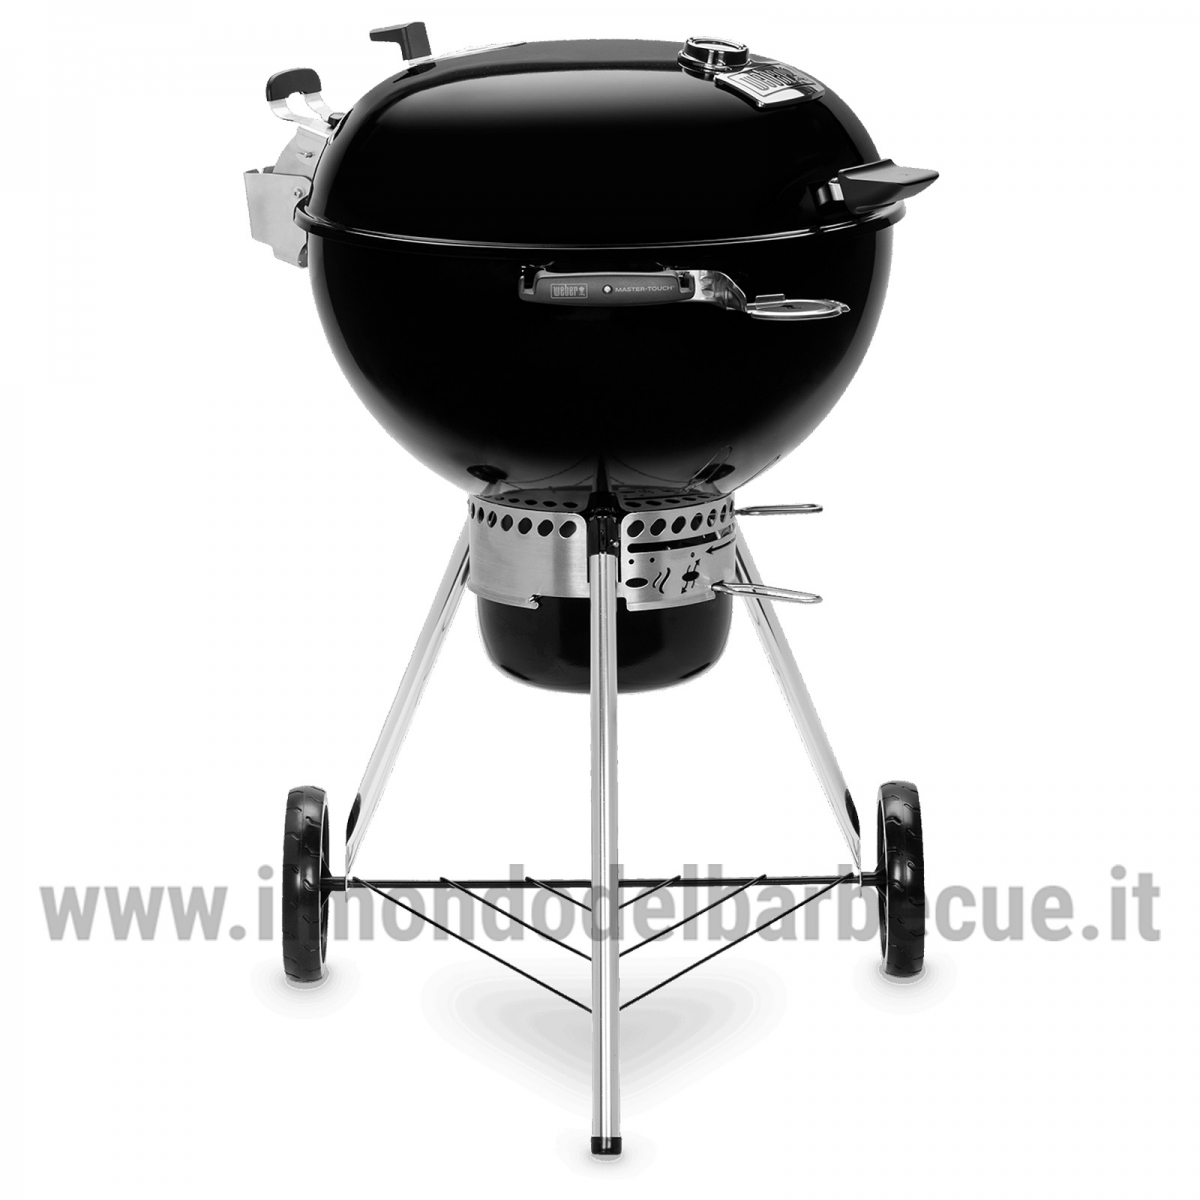 weber master touch gbs premium e 5770 barbecue a carbone. Black Bedroom Furniture Sets. Home Design Ideas